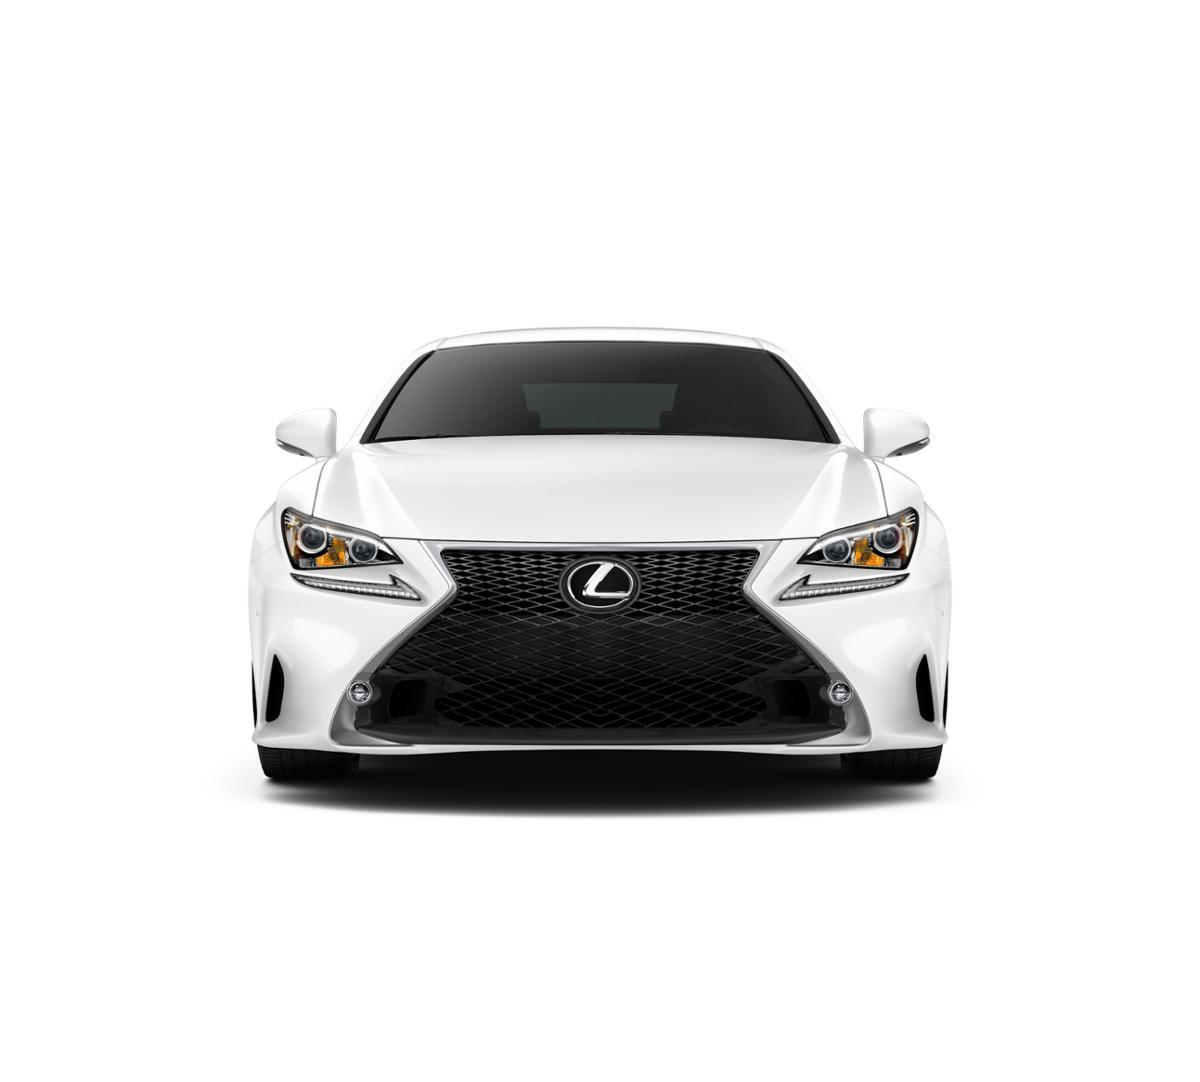 Lexus Rc 350 F Sport Price: New Ultra White 2018 Lexus RC 350 F Sport In Clearwater